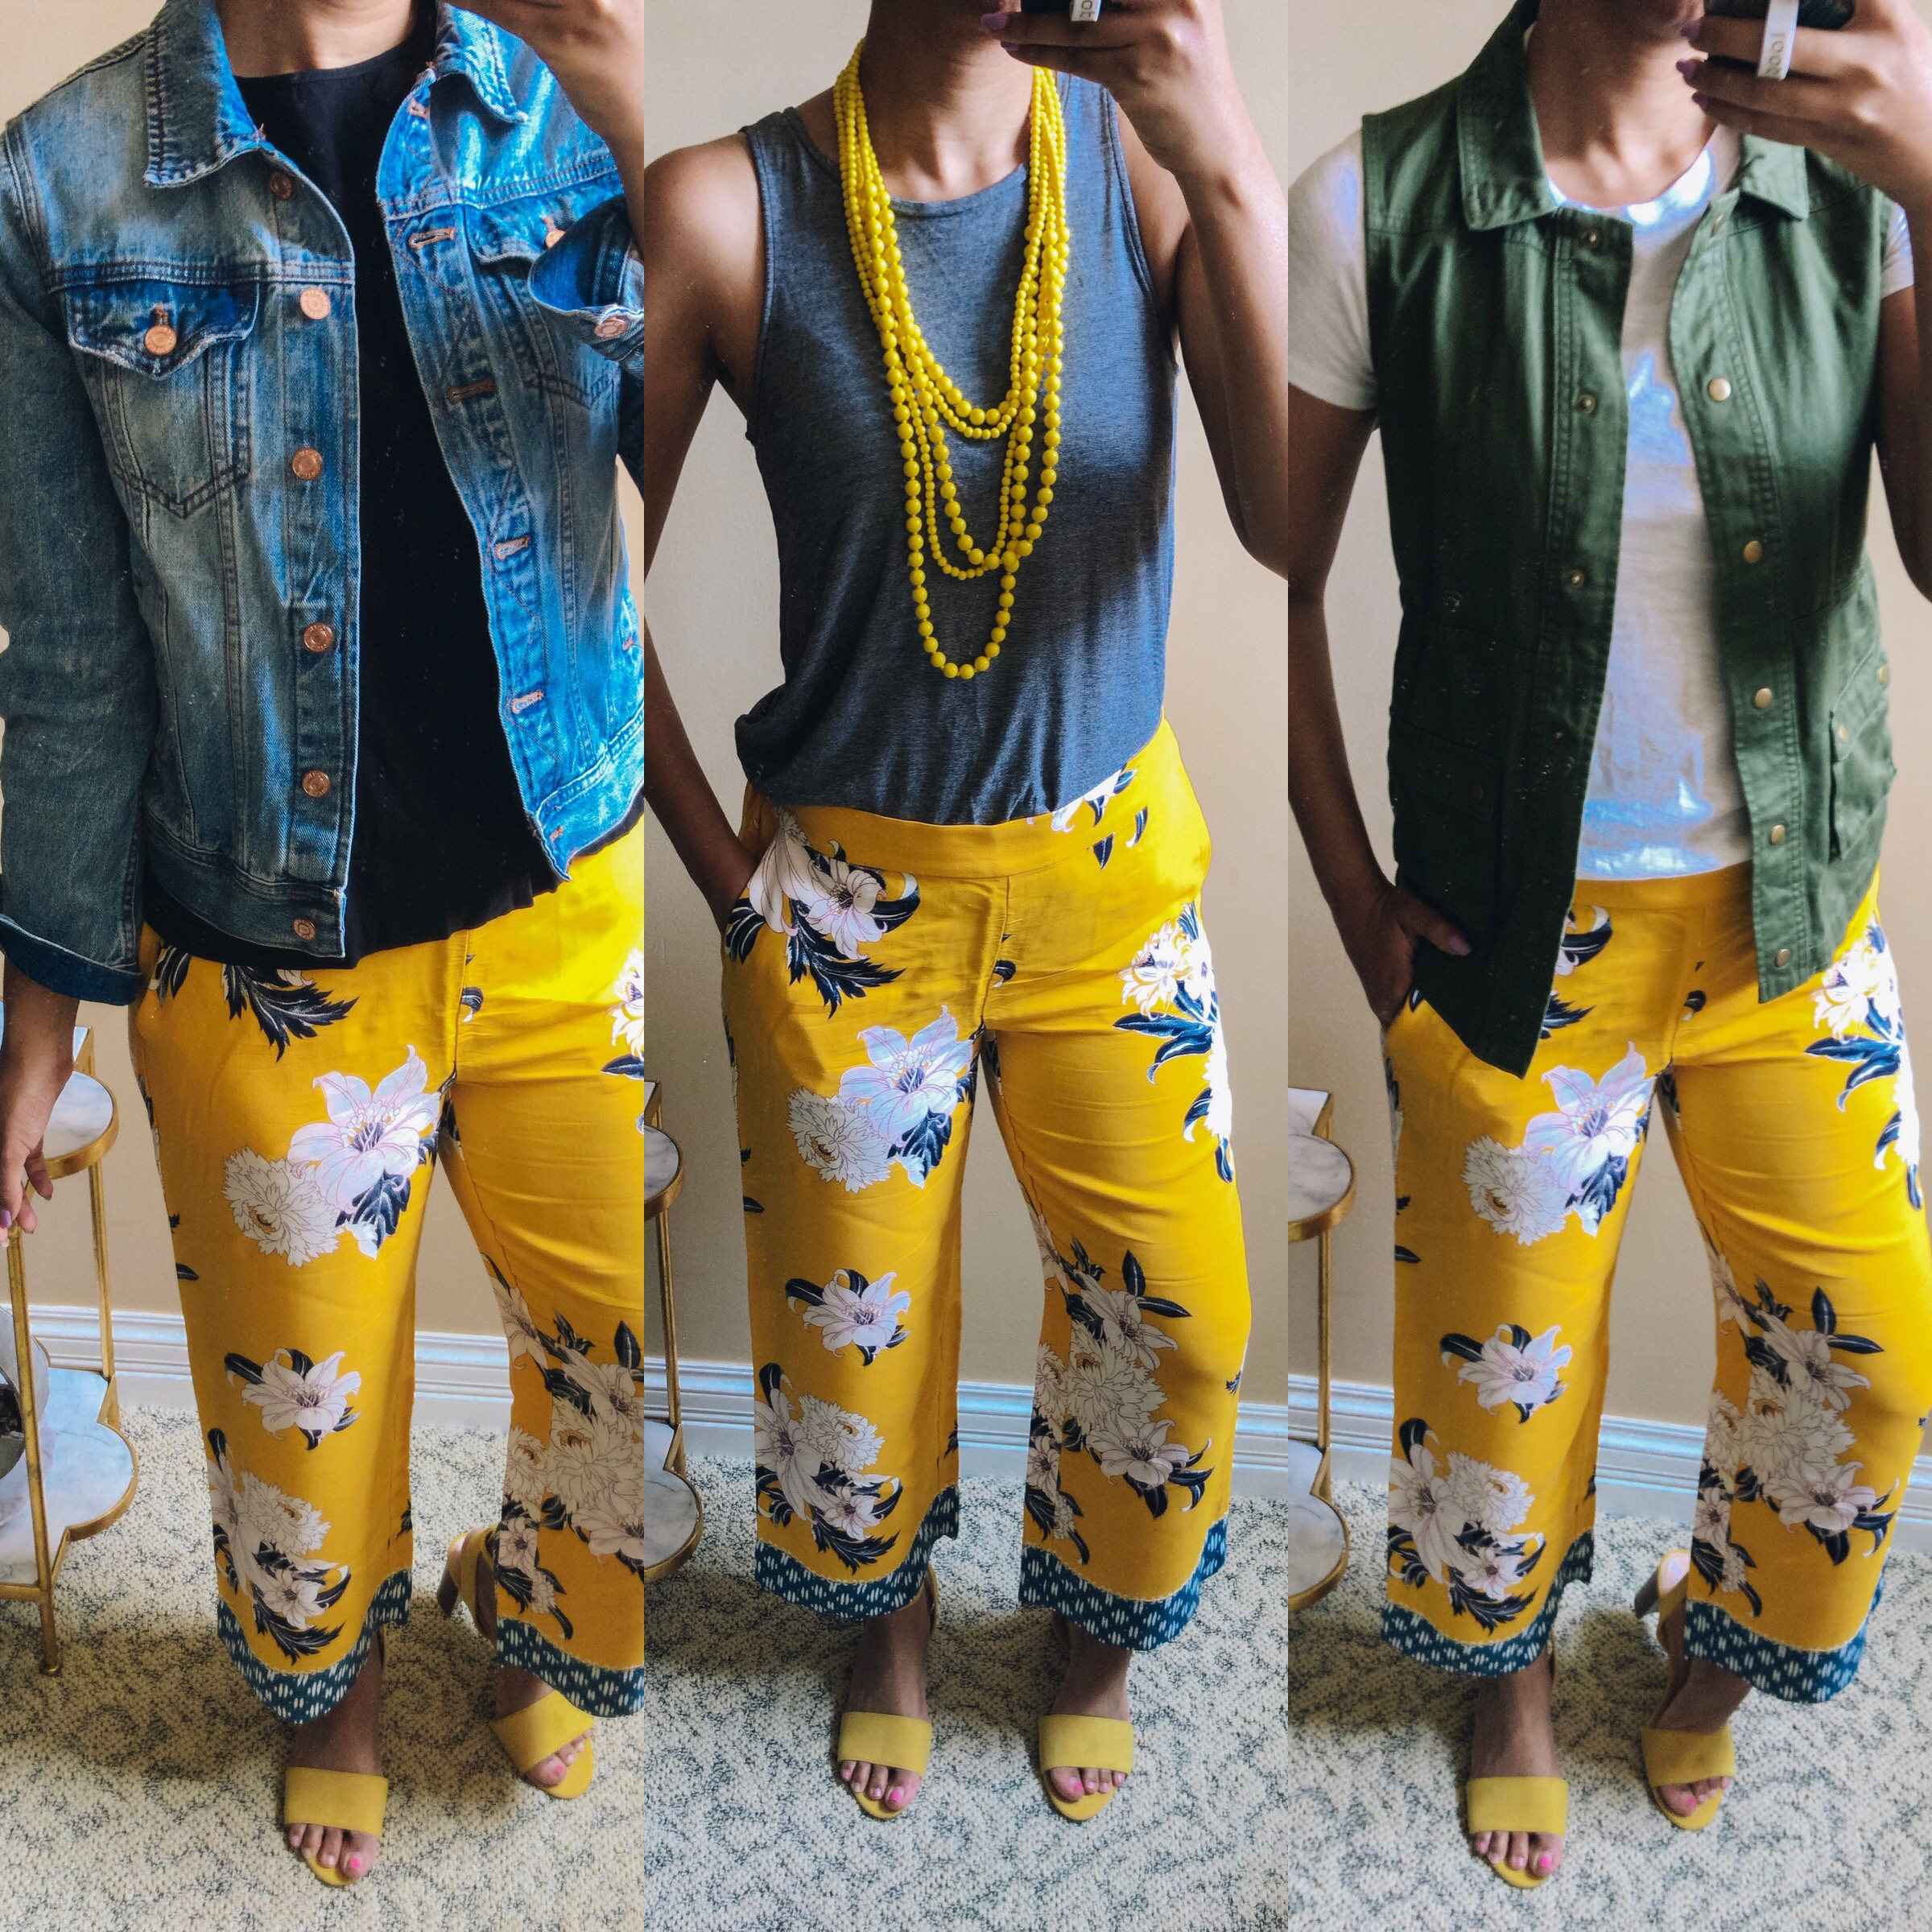 Popular style blogger, What Nicole Wore, shares three ways to wear floral pants. This guide to wide leg pants and how to style them is super helpful. // outfit ideas, yellow floral pants, wide leg pants outfits